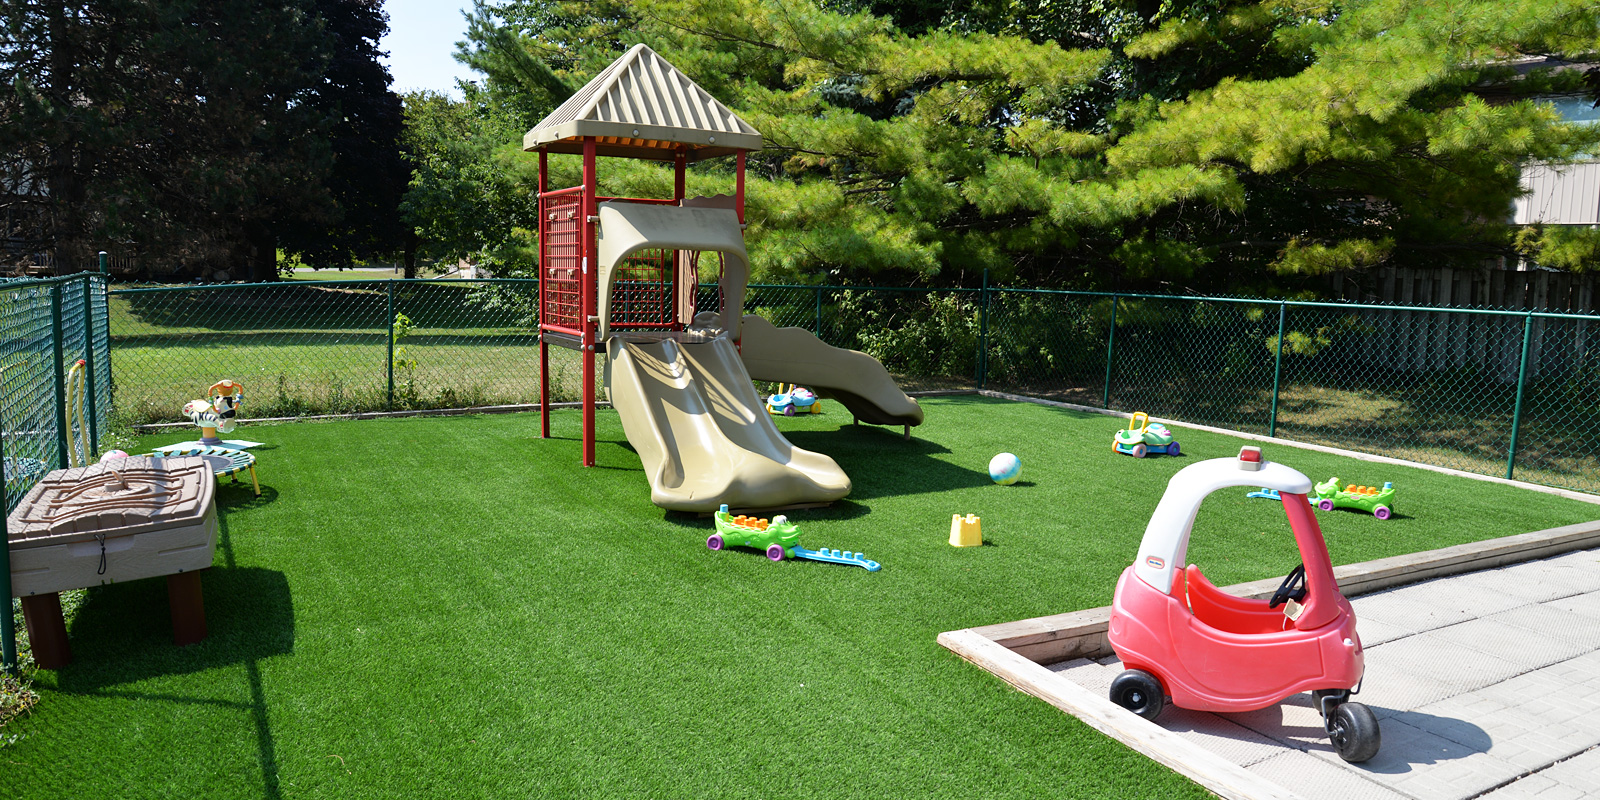 A Great Outdoor Playspace!